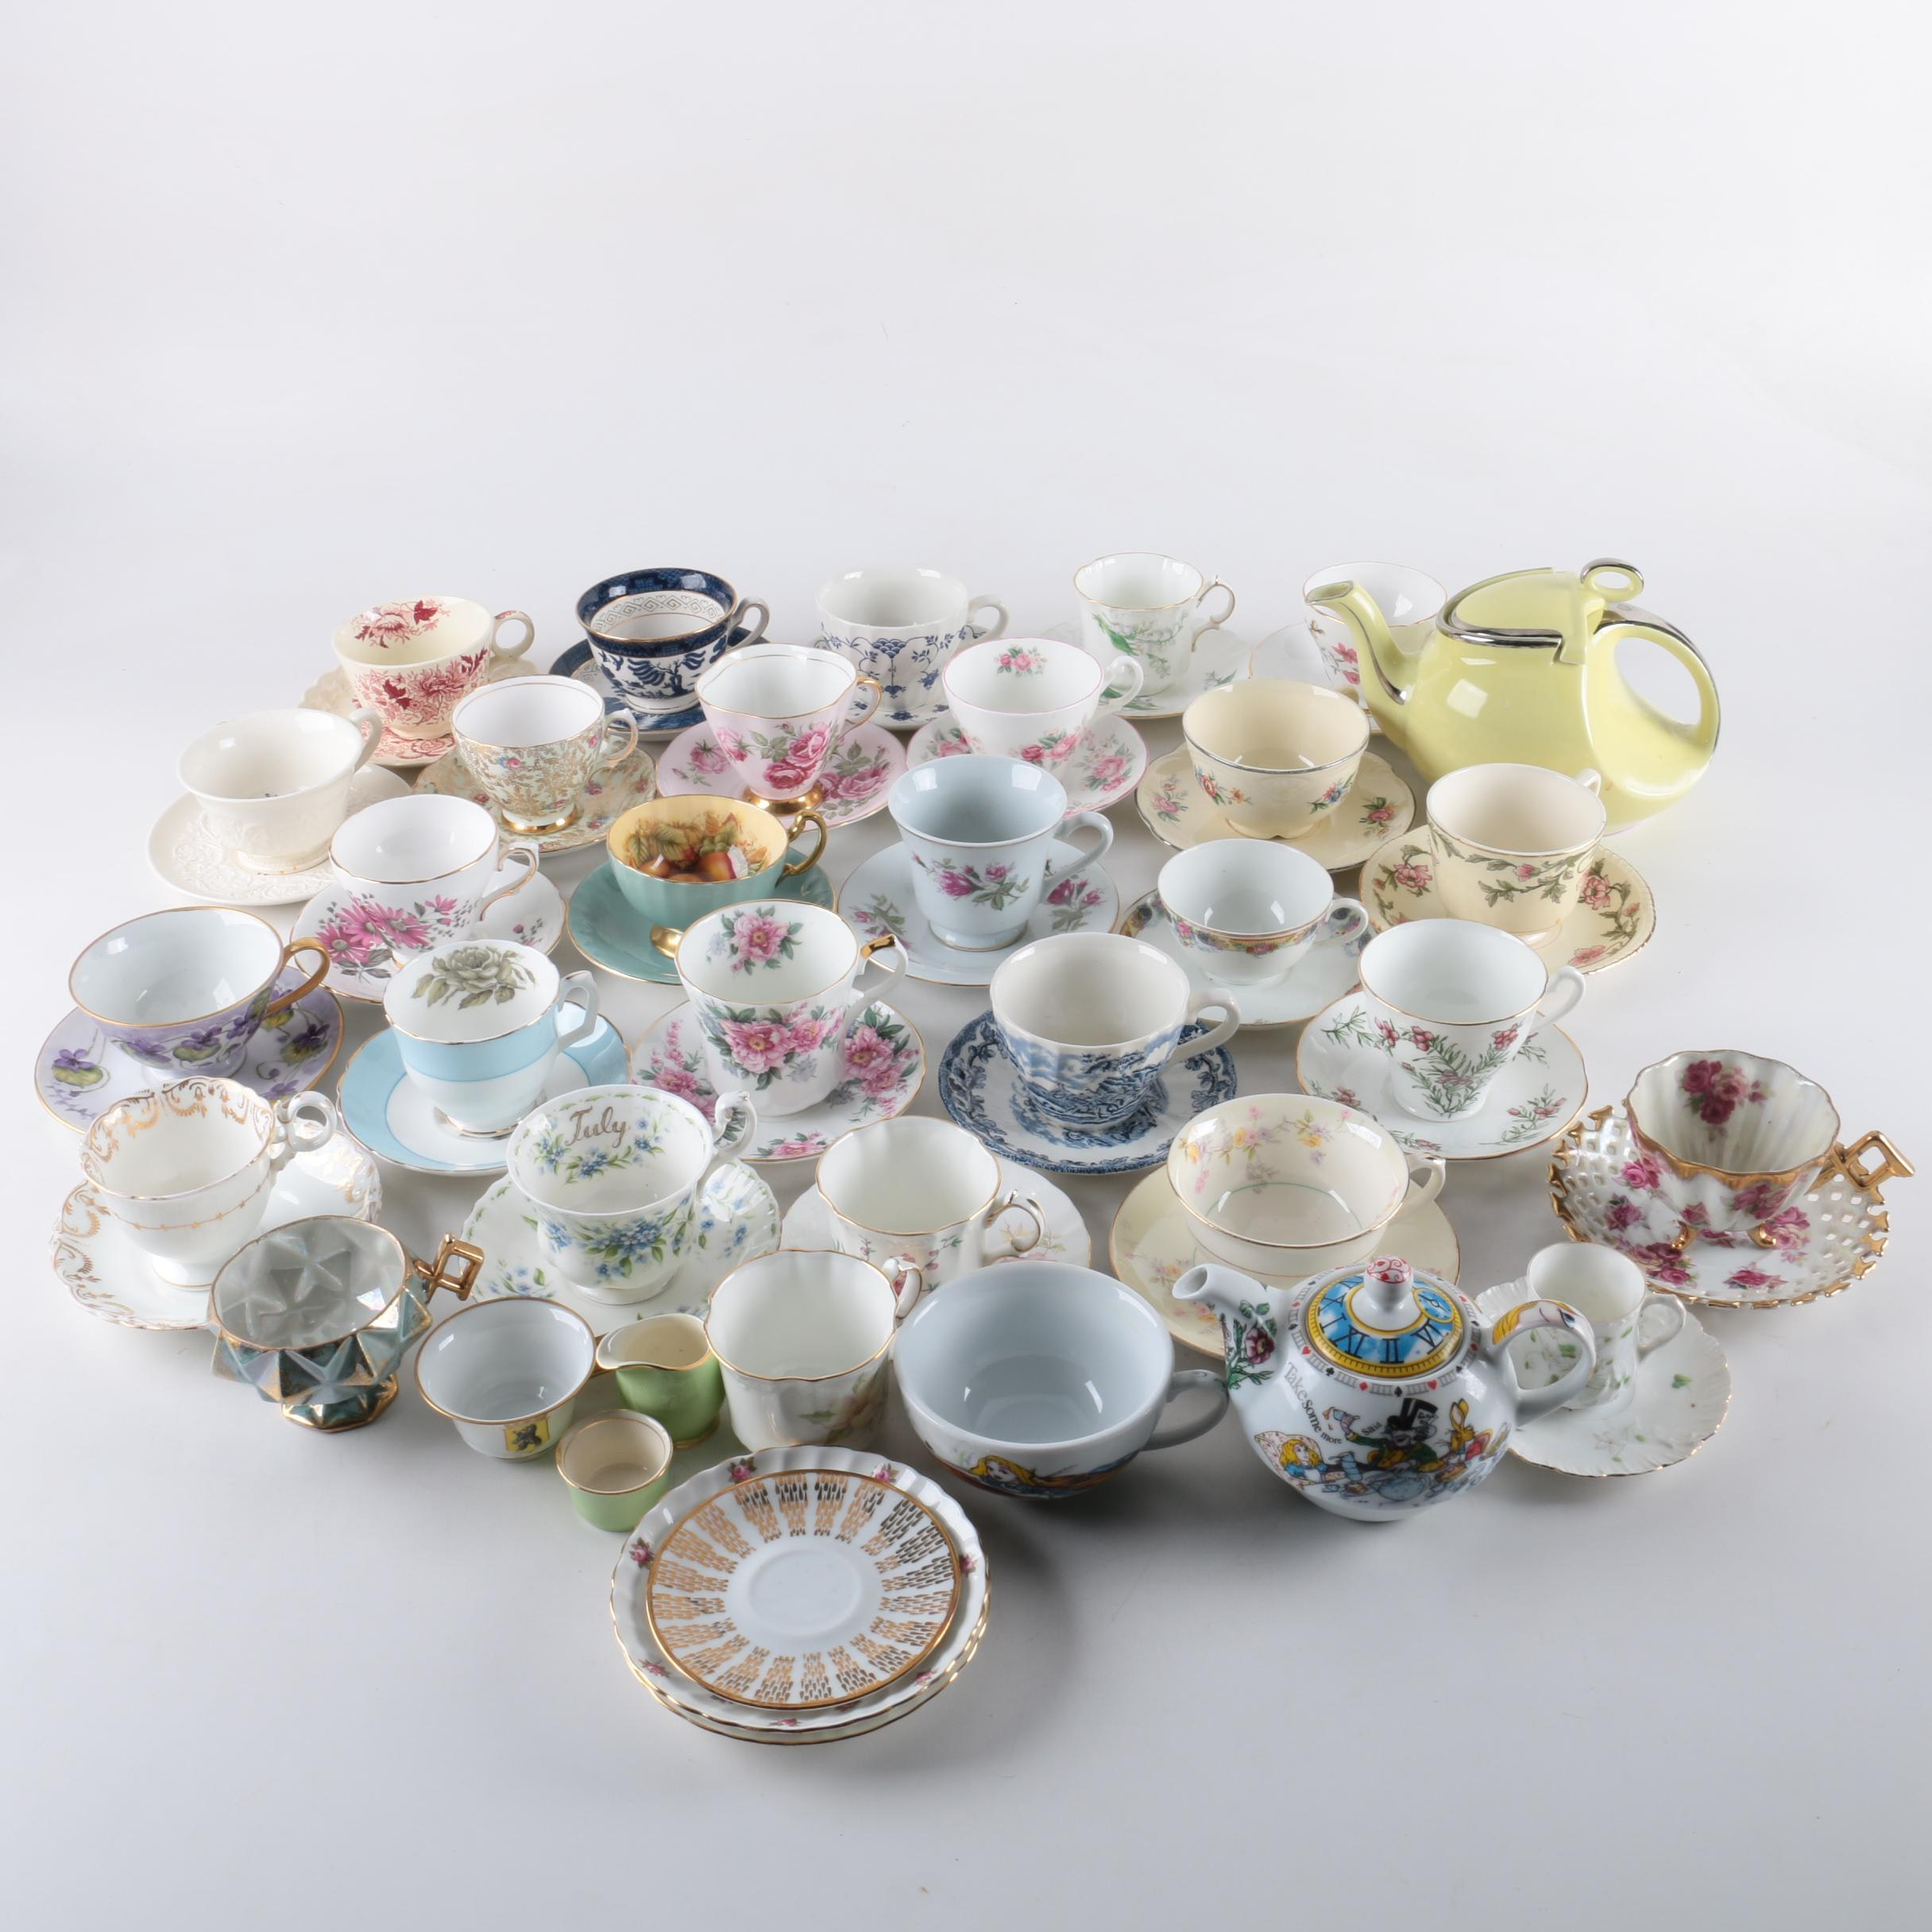 Tea Serving Ware Featuring Hall